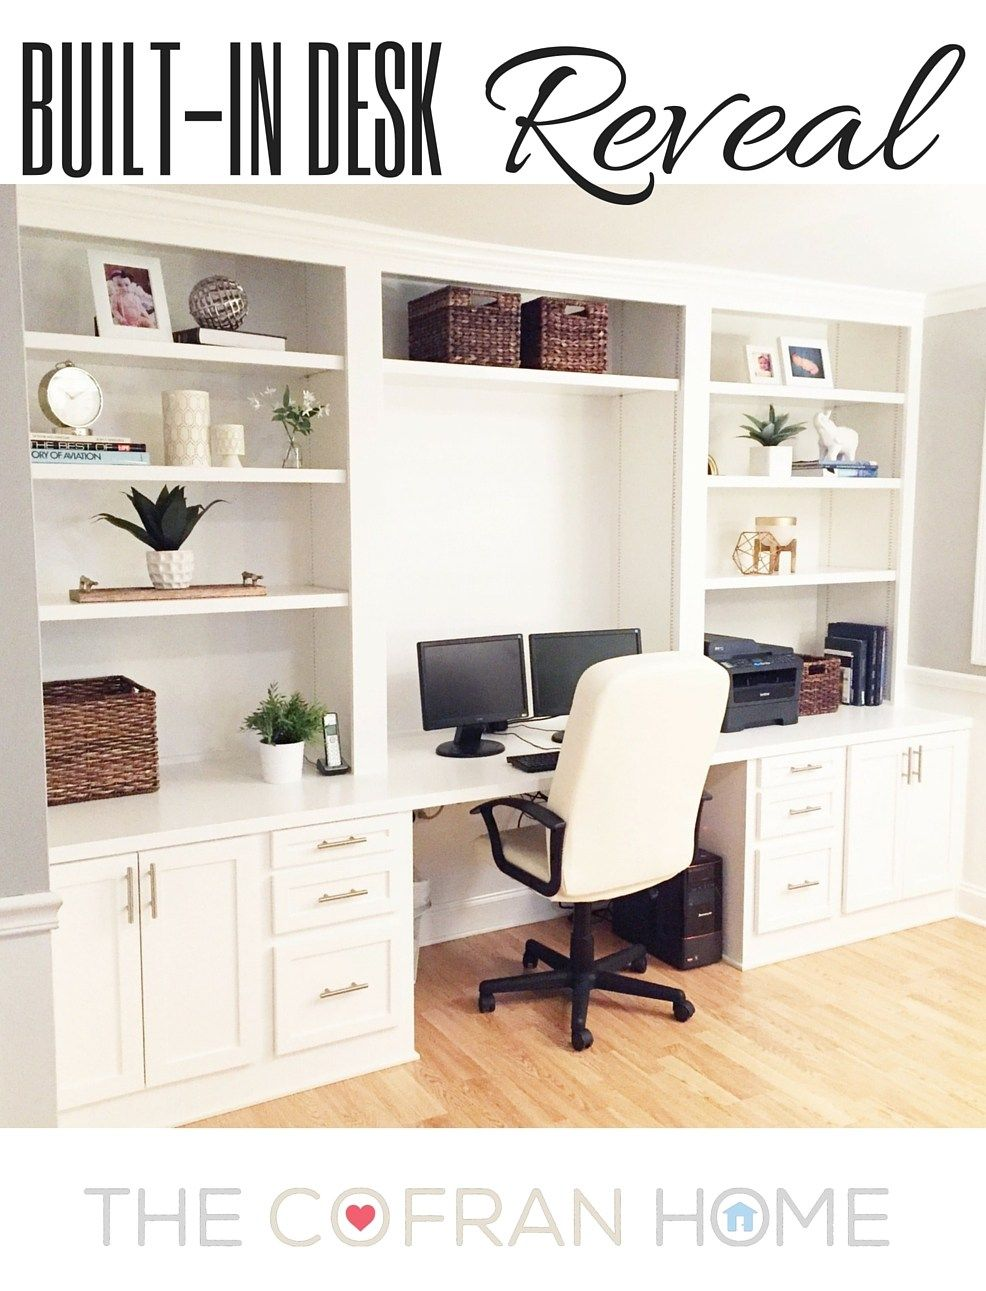 Built In Desk Reveal The Cofran Home Home Office Design Home